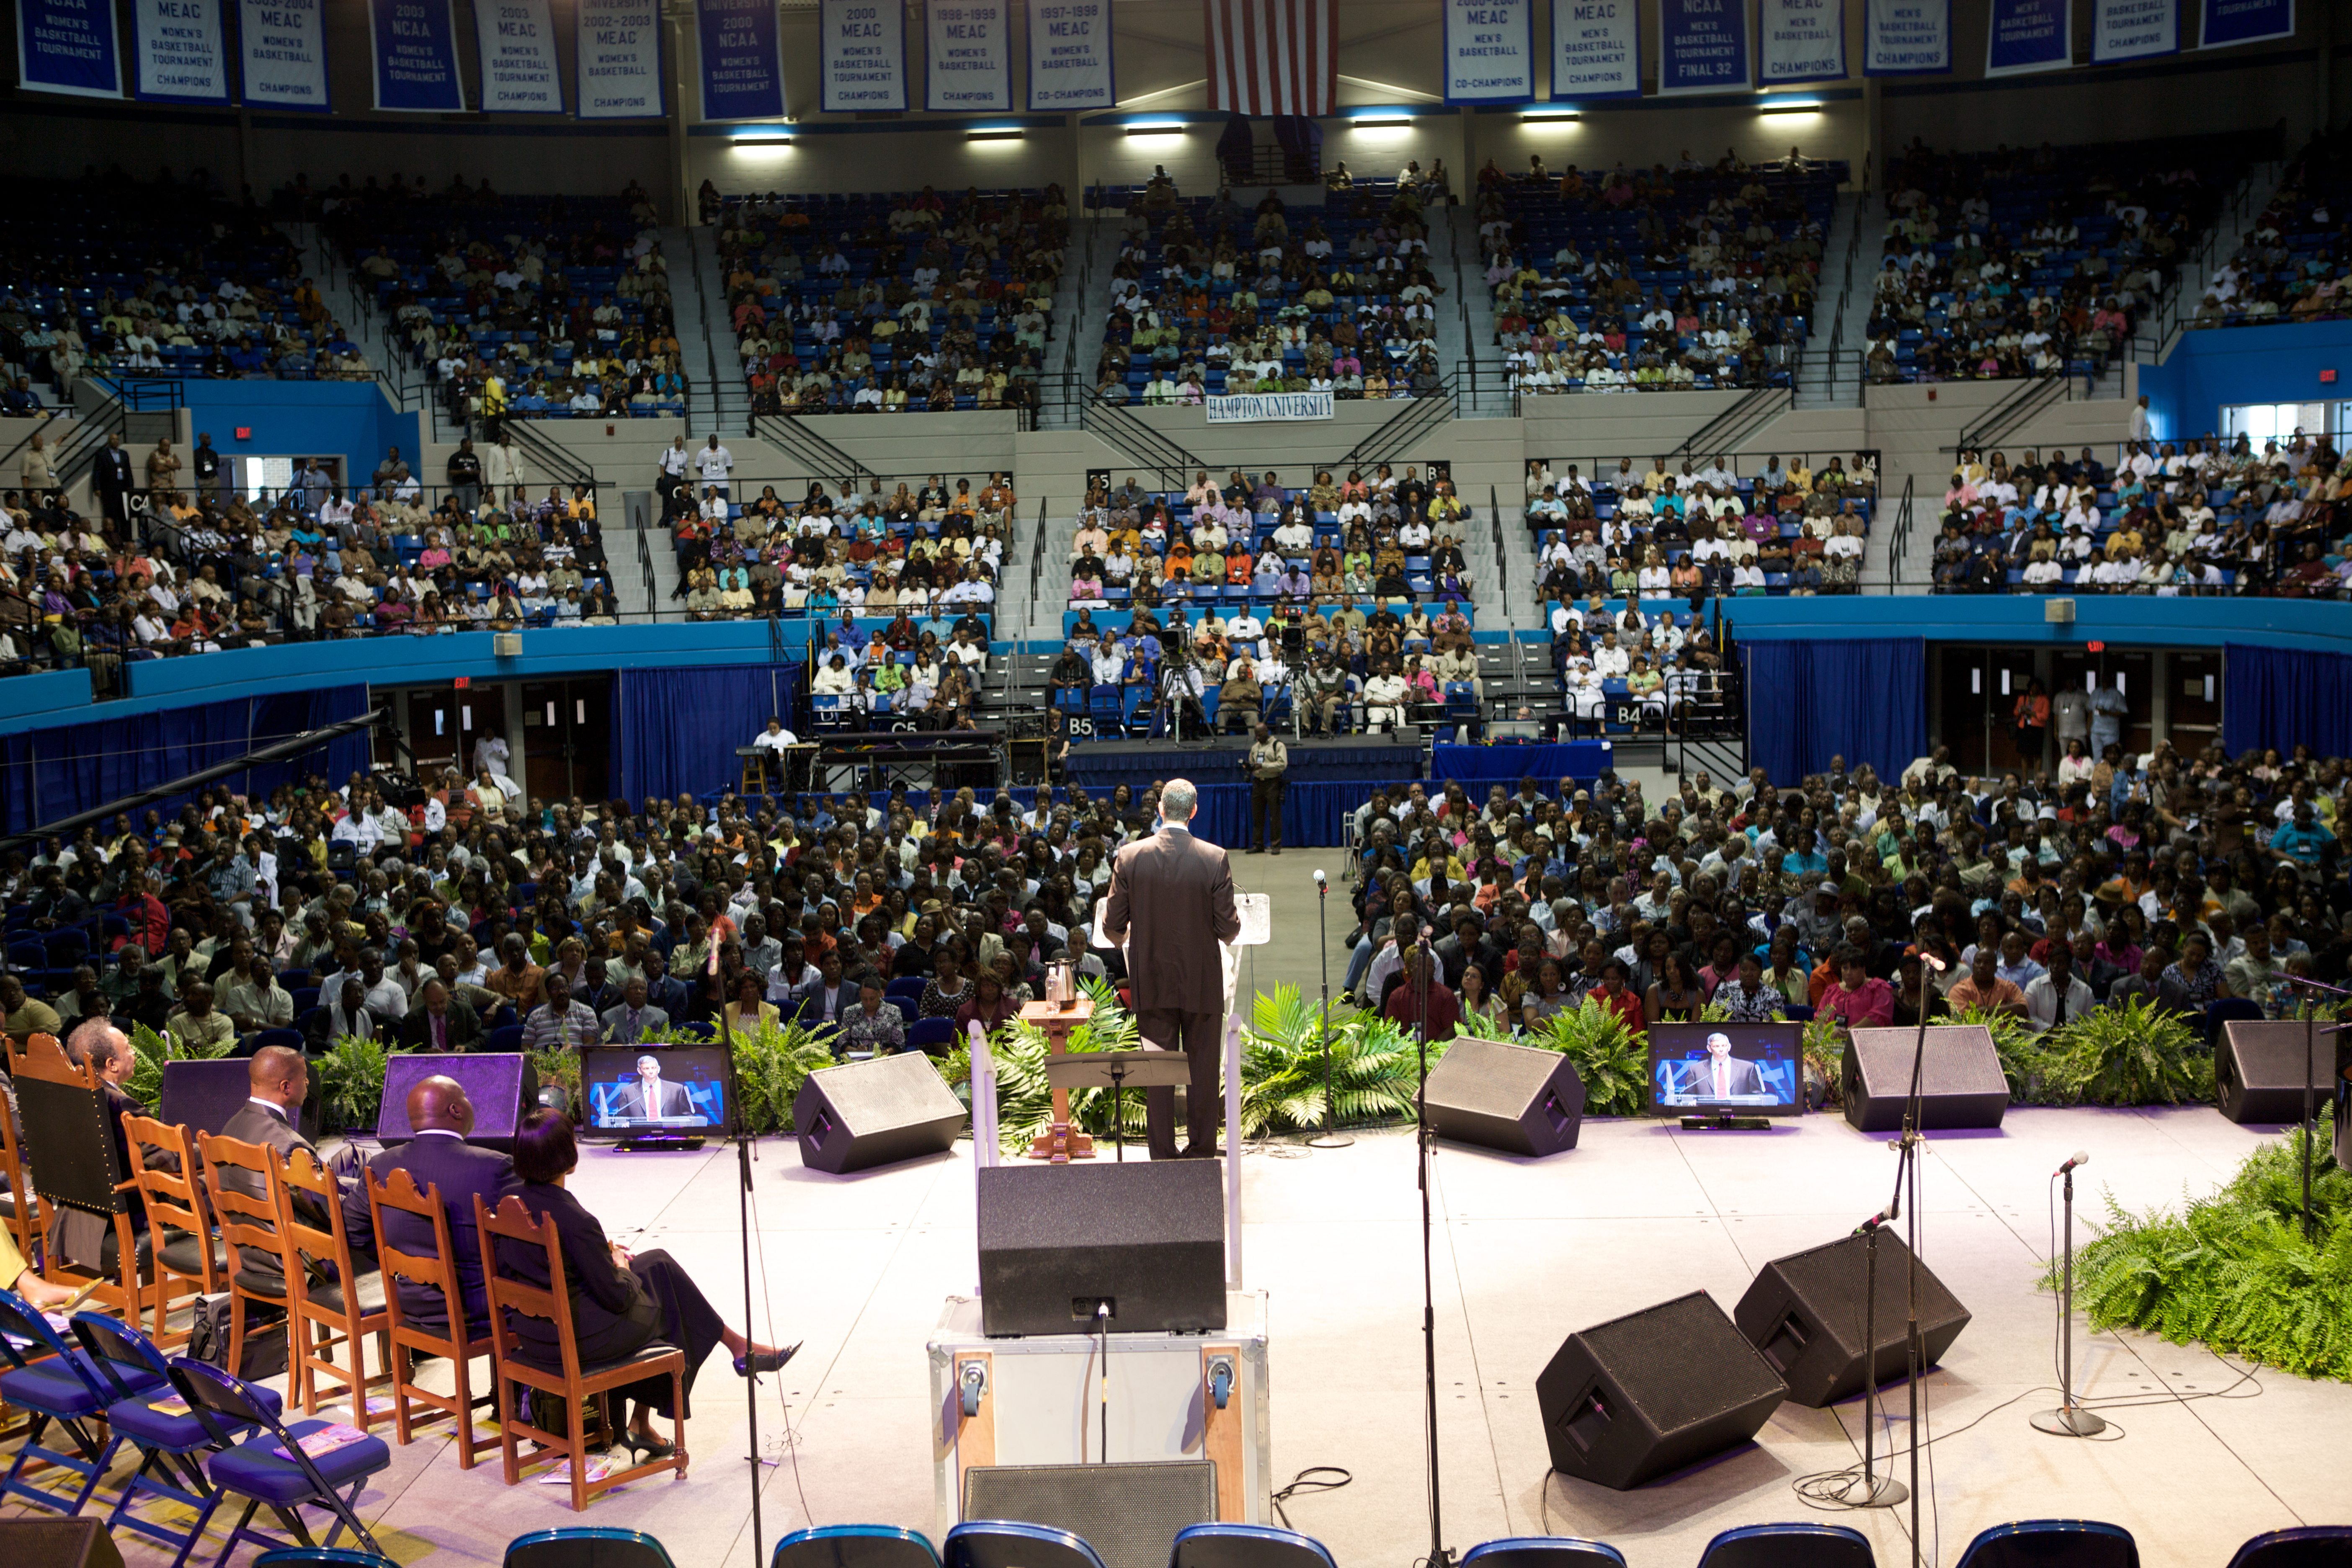 Secretary Arne Duncan Speaks at the 96th Annual Minister's Conference at Hampton University